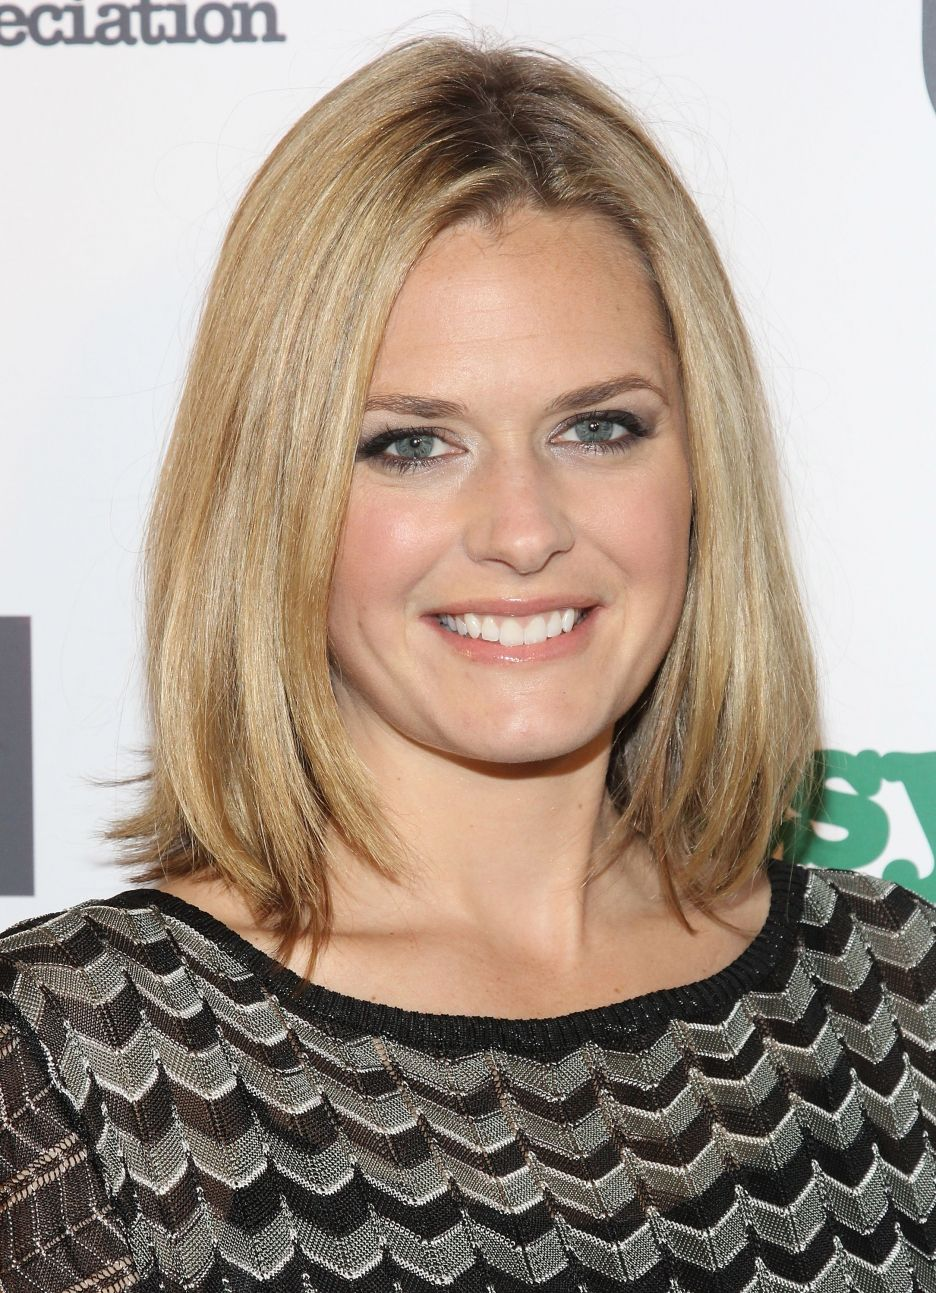 Maggie Lawson Nude Pictures Minimalist psyc - nyy'xai maggie lawson | inspiration pairs in movies & media